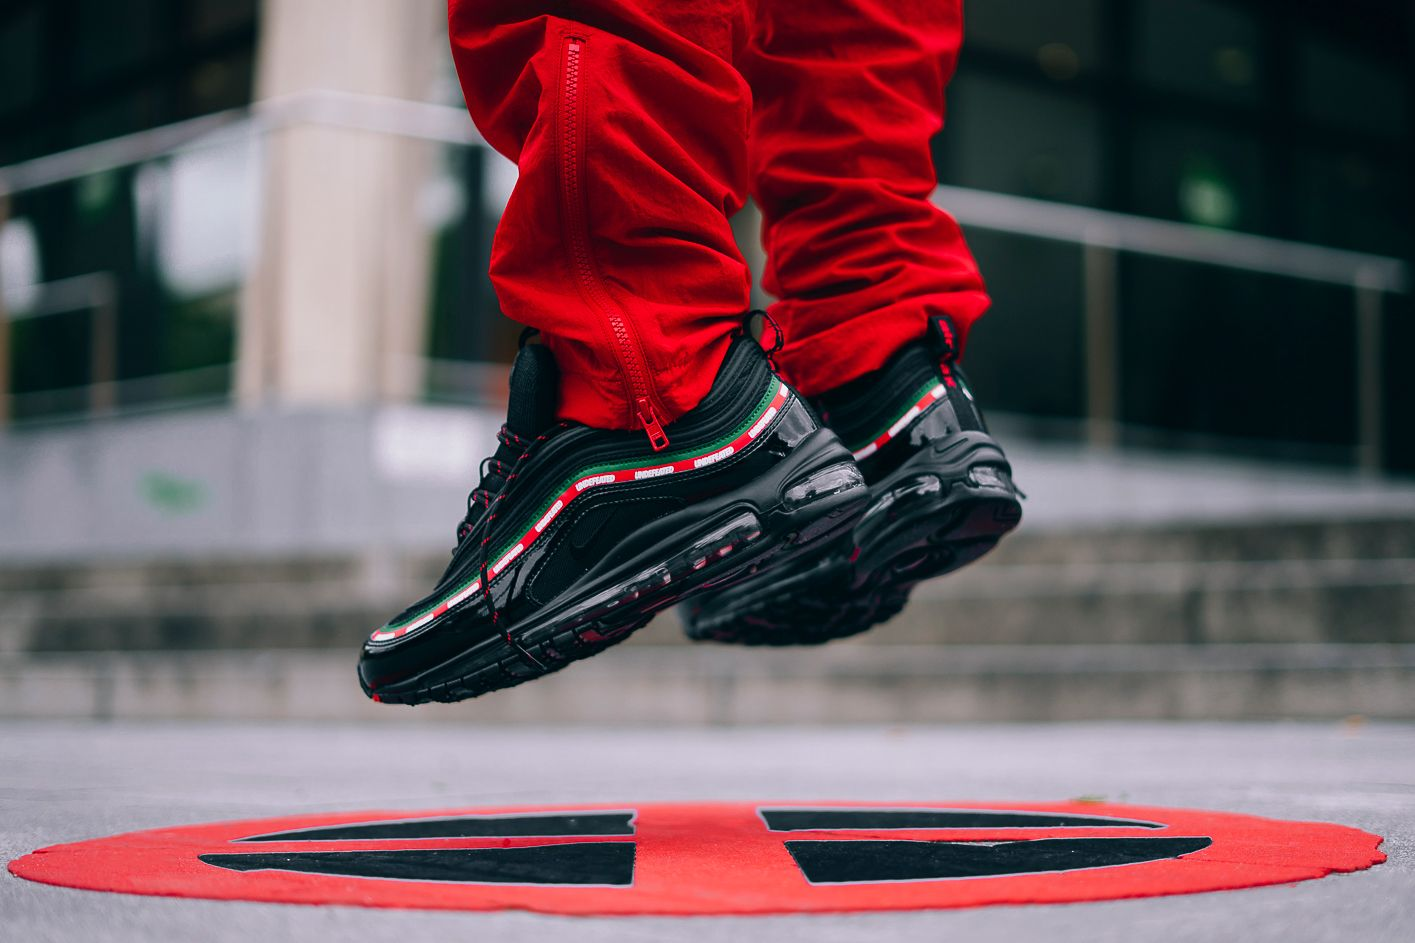 35c681d4d6 An On-Feet Look at the UNDEFEATED x Nike Air Max 97 | Denim and ...